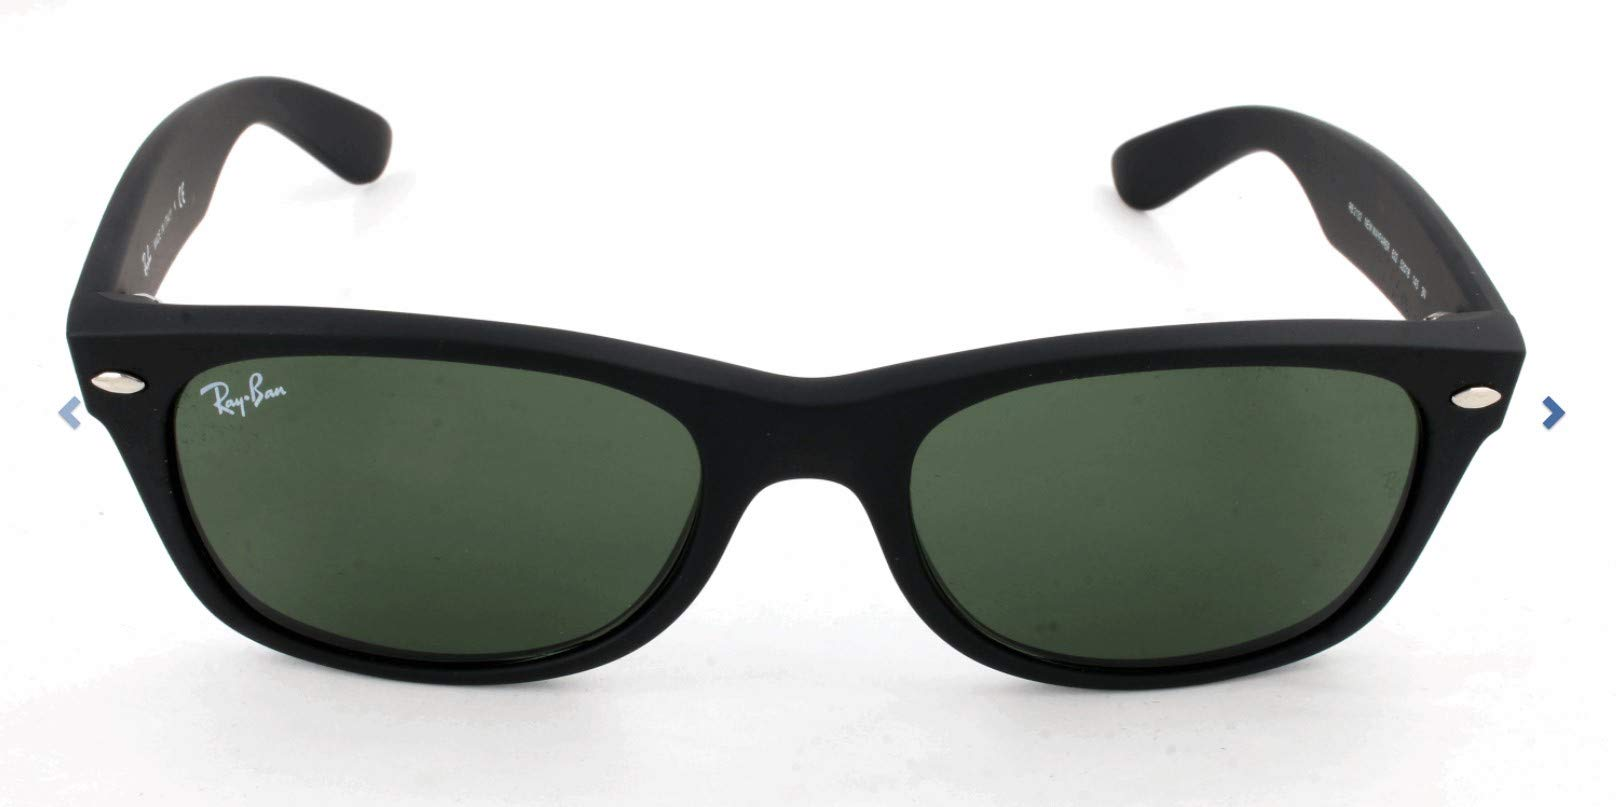 RAY-BAN RB2132 New Wayfarer Sunglasses, Black Rubber/Green, 55 mm by RAY-BAN